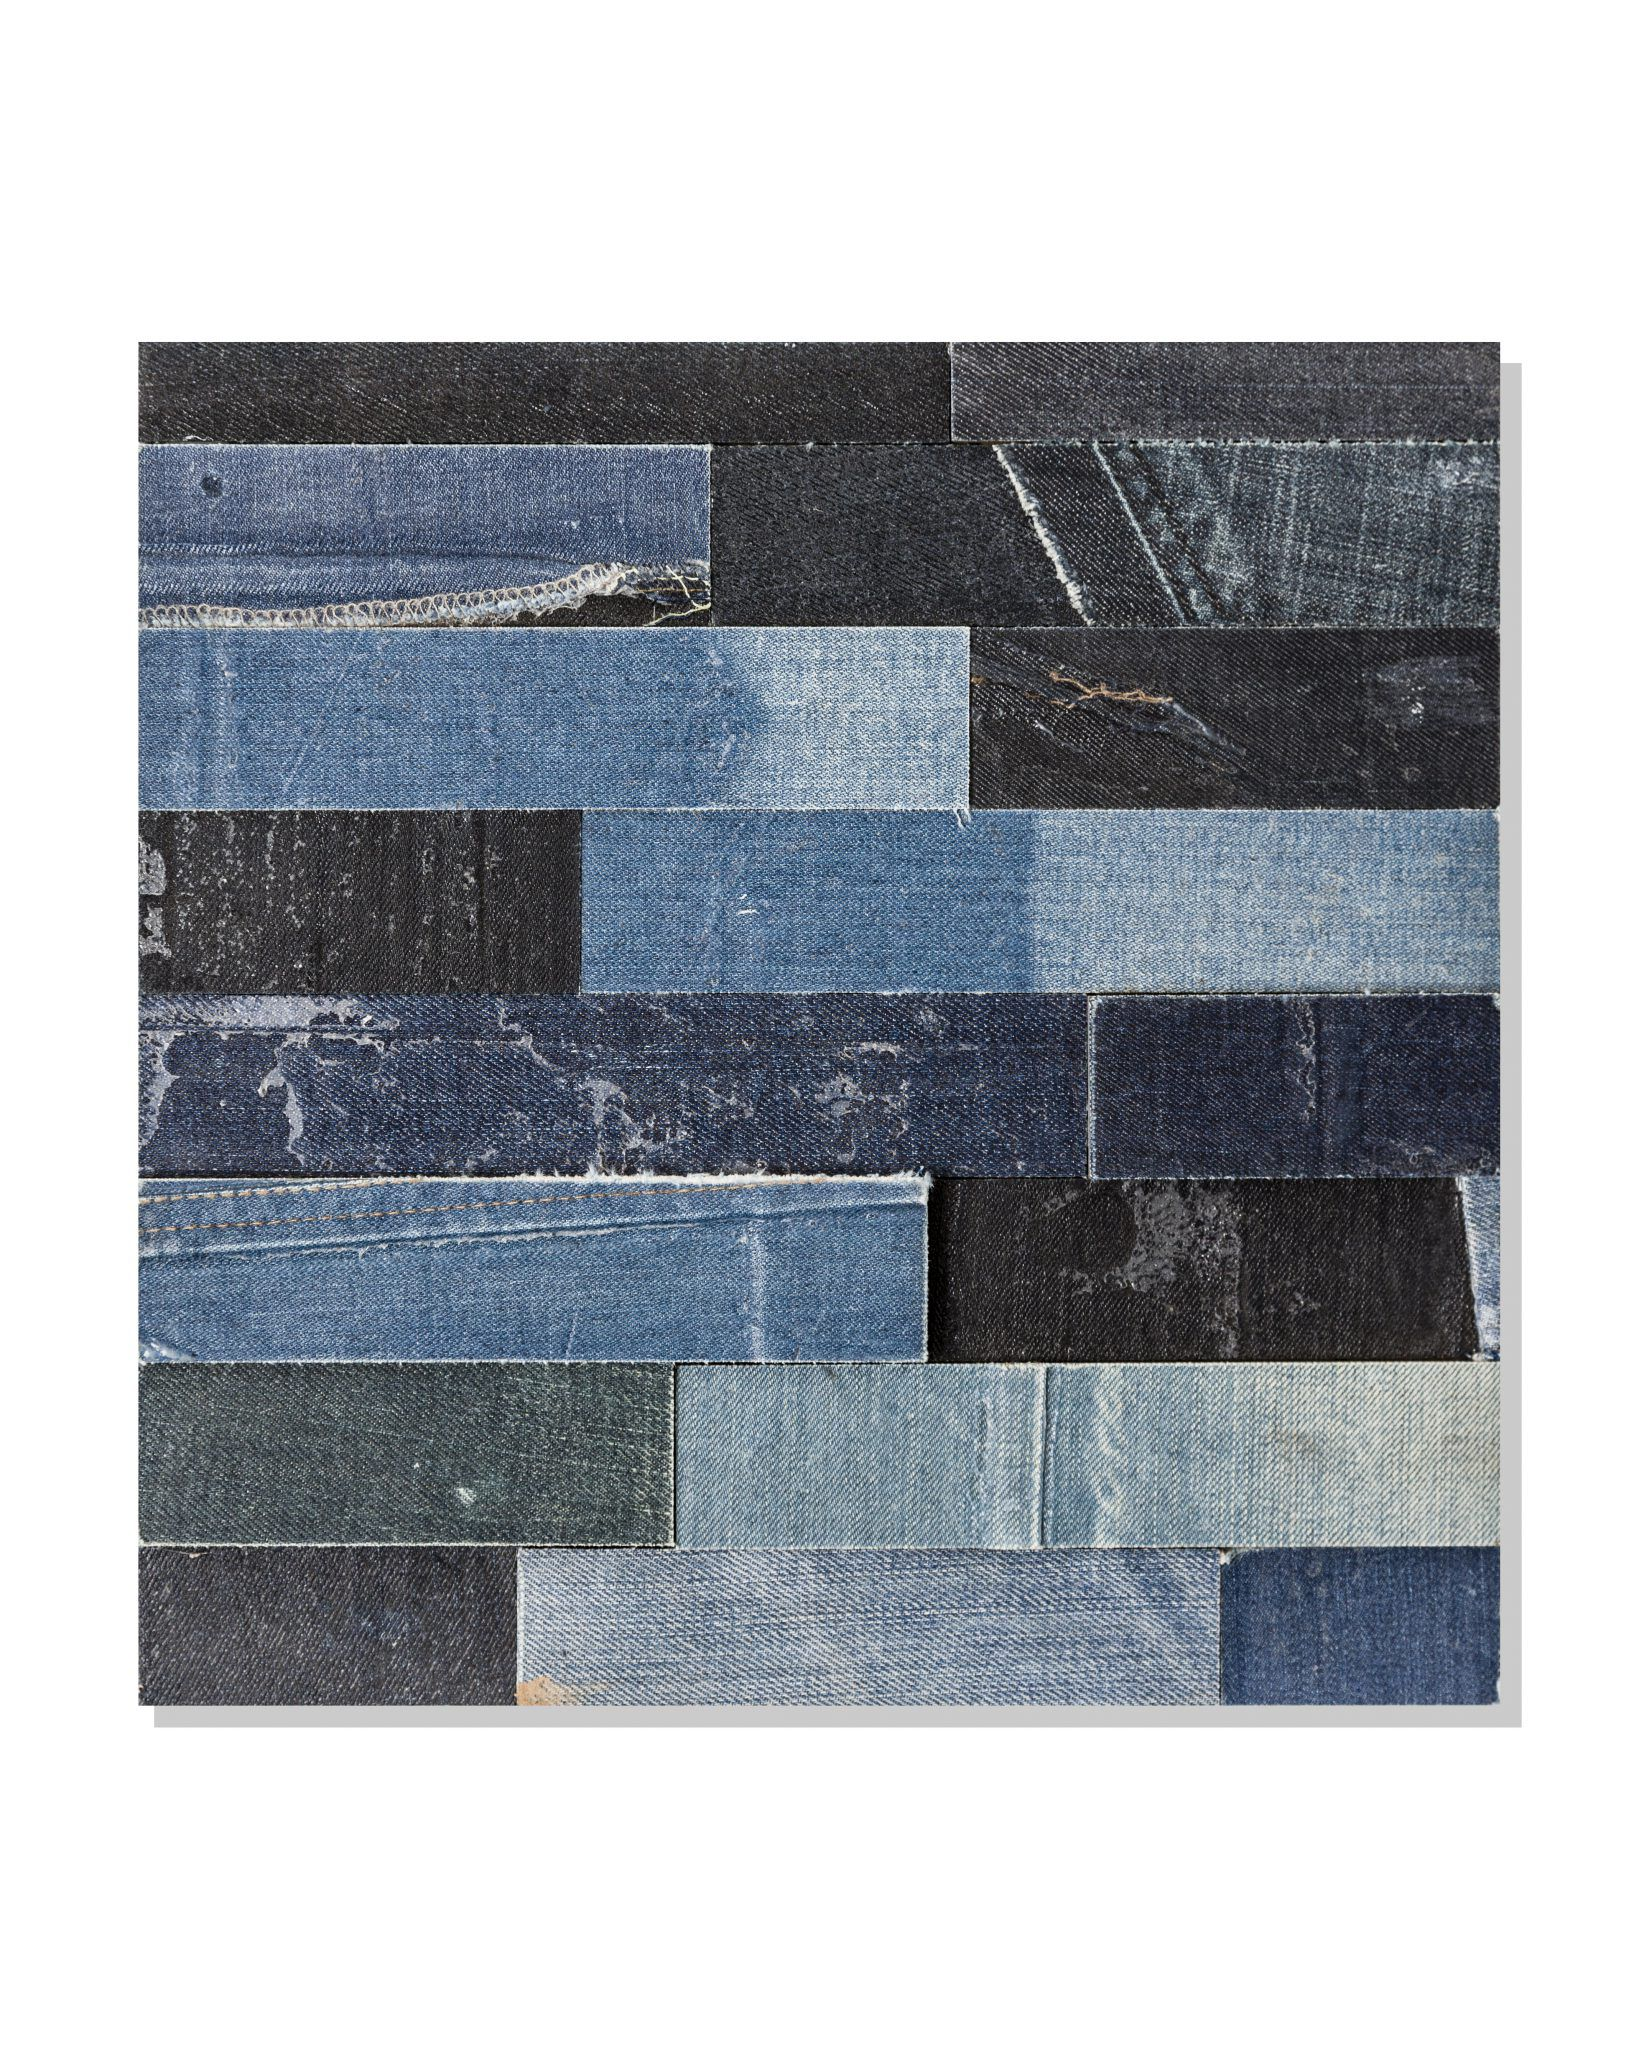 fabric wall cladding - Indigenous recycled jeans cladding